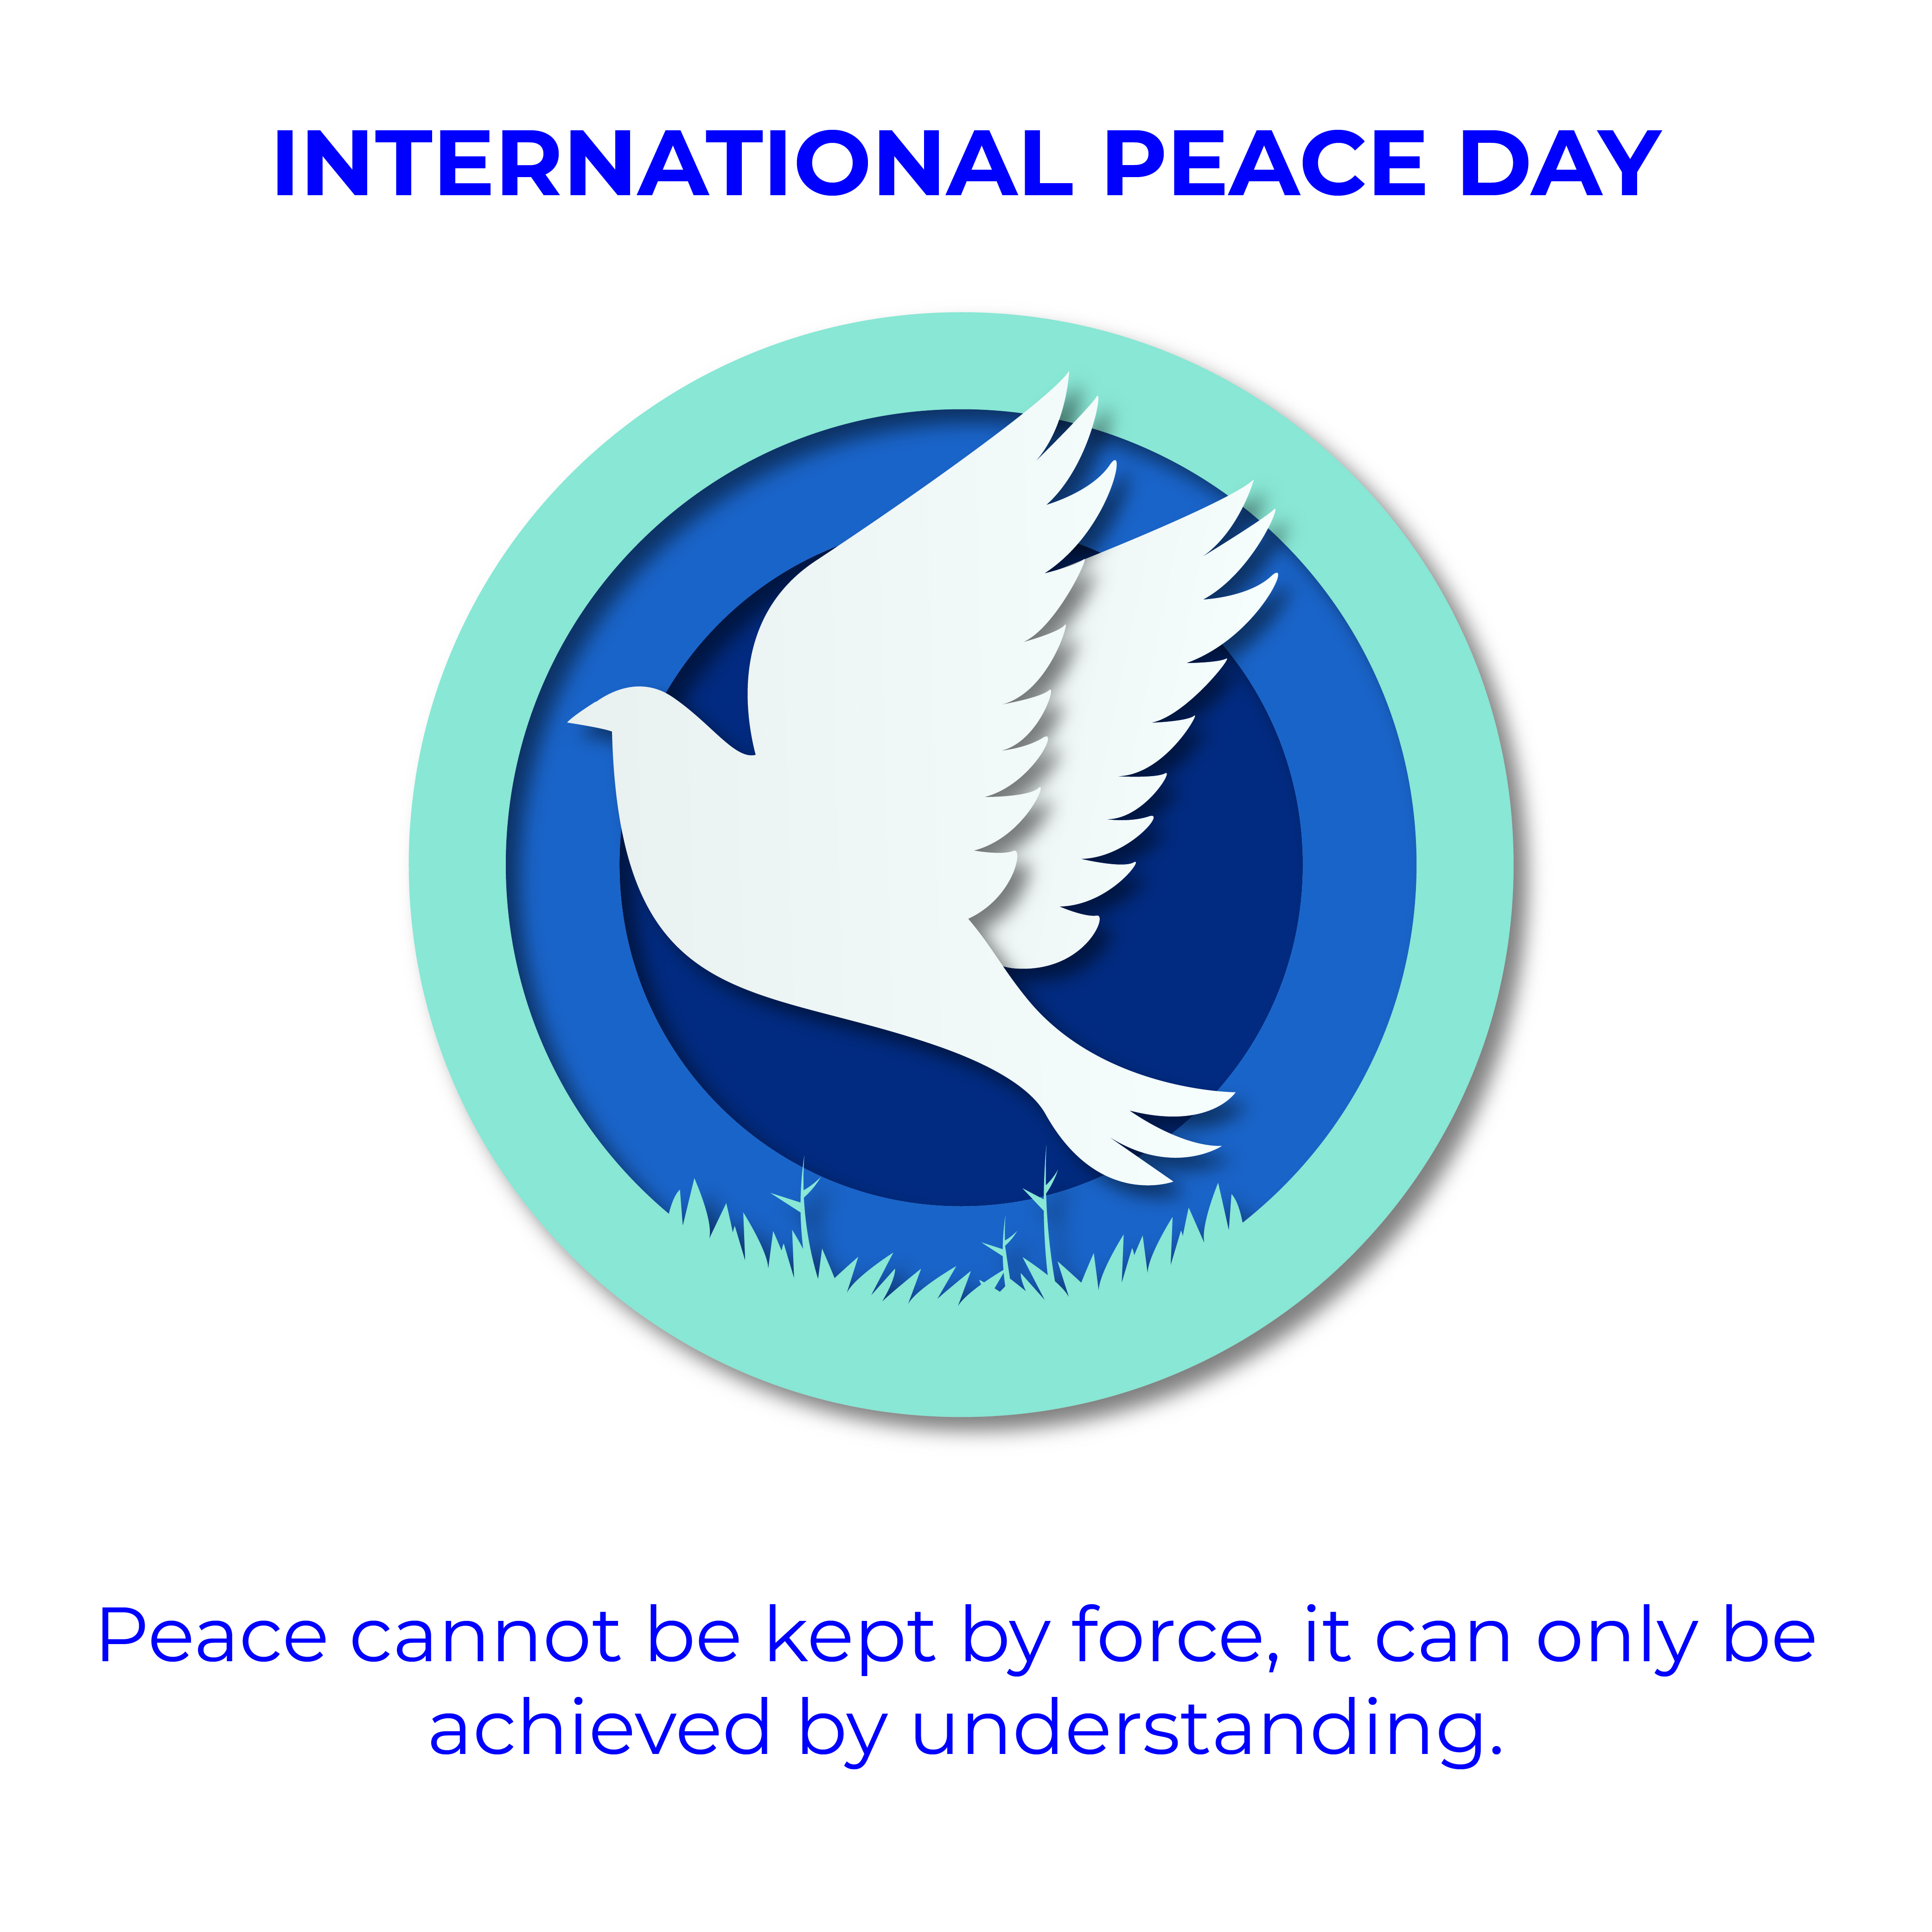 International peace day is envisioned to become a moment of global unity – it is up to each and ever